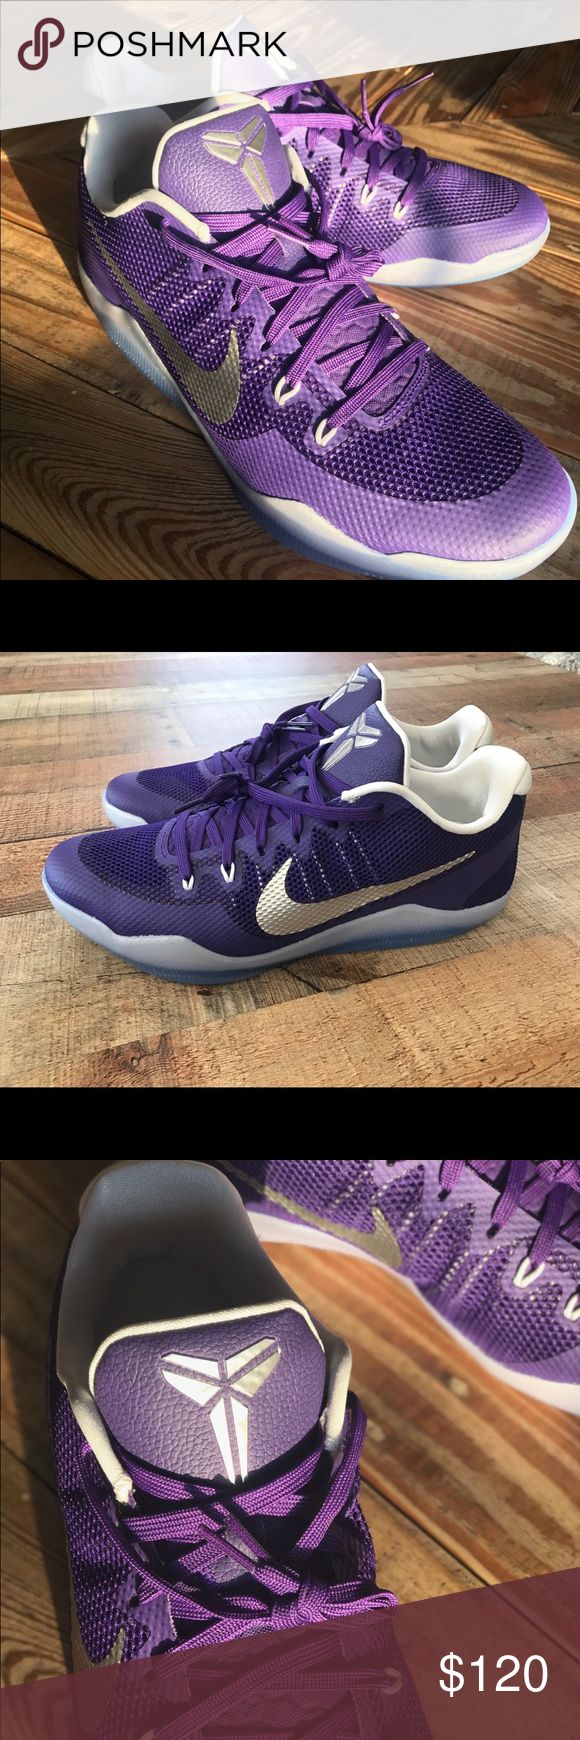 New Nike Kobe XI Elite Low - Lakers Purple Brand New Never worn  Representing Kobe Bryant's resilient return from injuring his Achilles. Webbing with integrated Flywire cables for dynamic midfoot lockdown. TPU-coated open mesh is durable, lightweight, and breathable. External heel counter for lateral stability. Internal stretch bootie for a snug, one-to-one fit. Responsive Lunarlon foam with flex grooves for natural motion. Low-profile, thin rubber for traction. Unique traction pattern for…